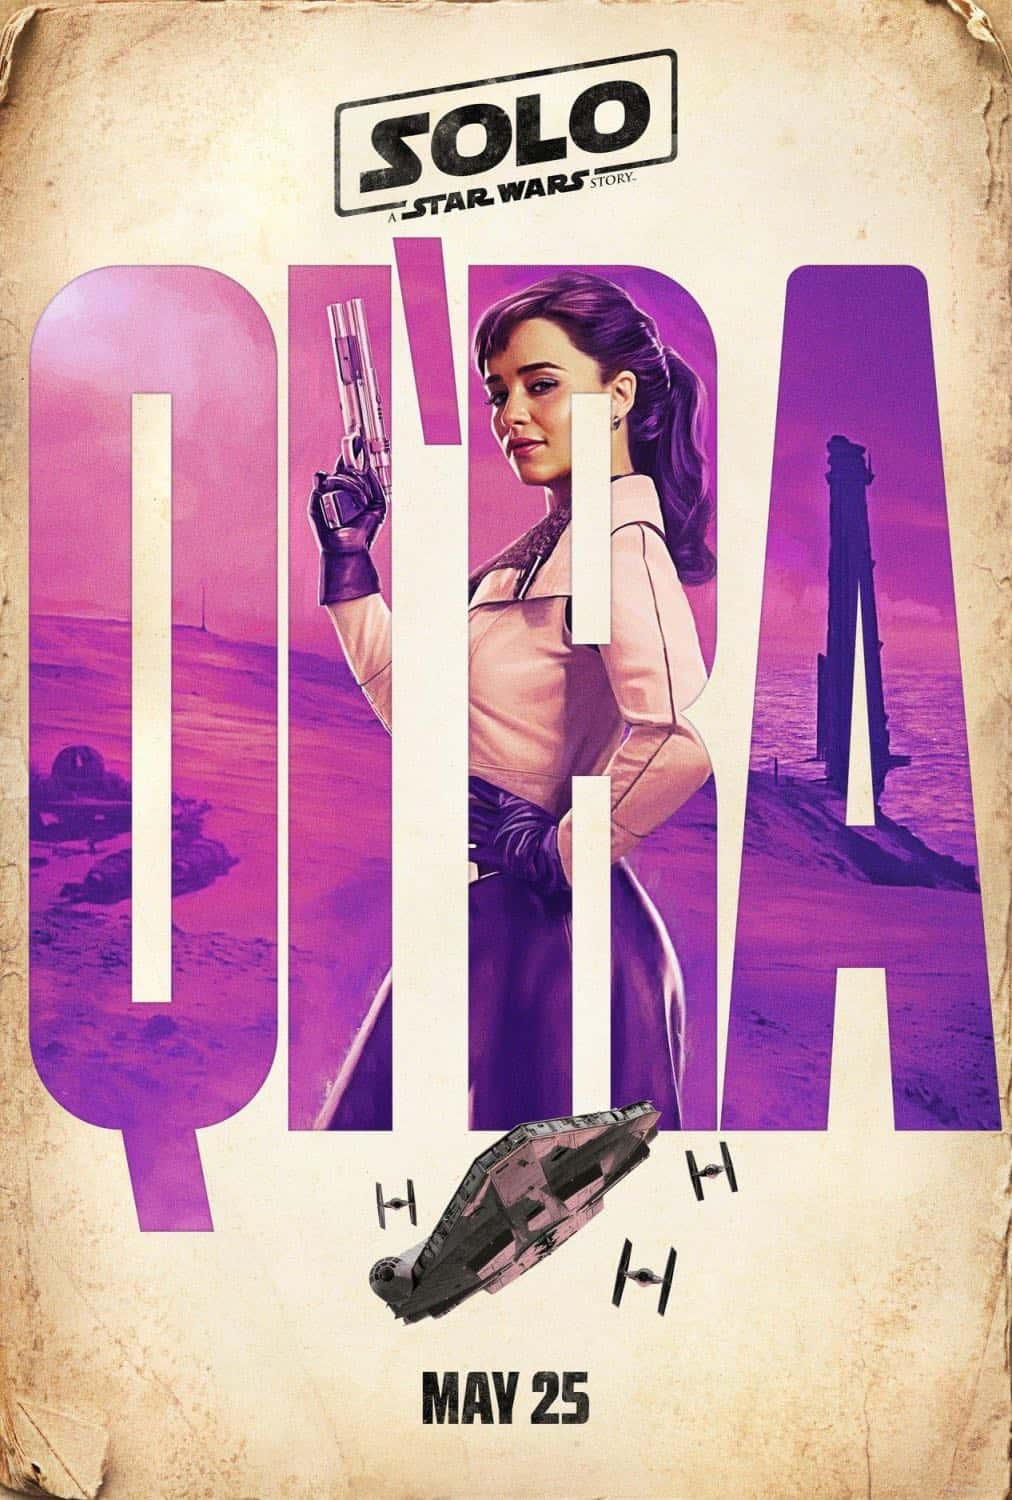 Solo A Star Wars Story Emilia Clarke Qi'Ra Poster